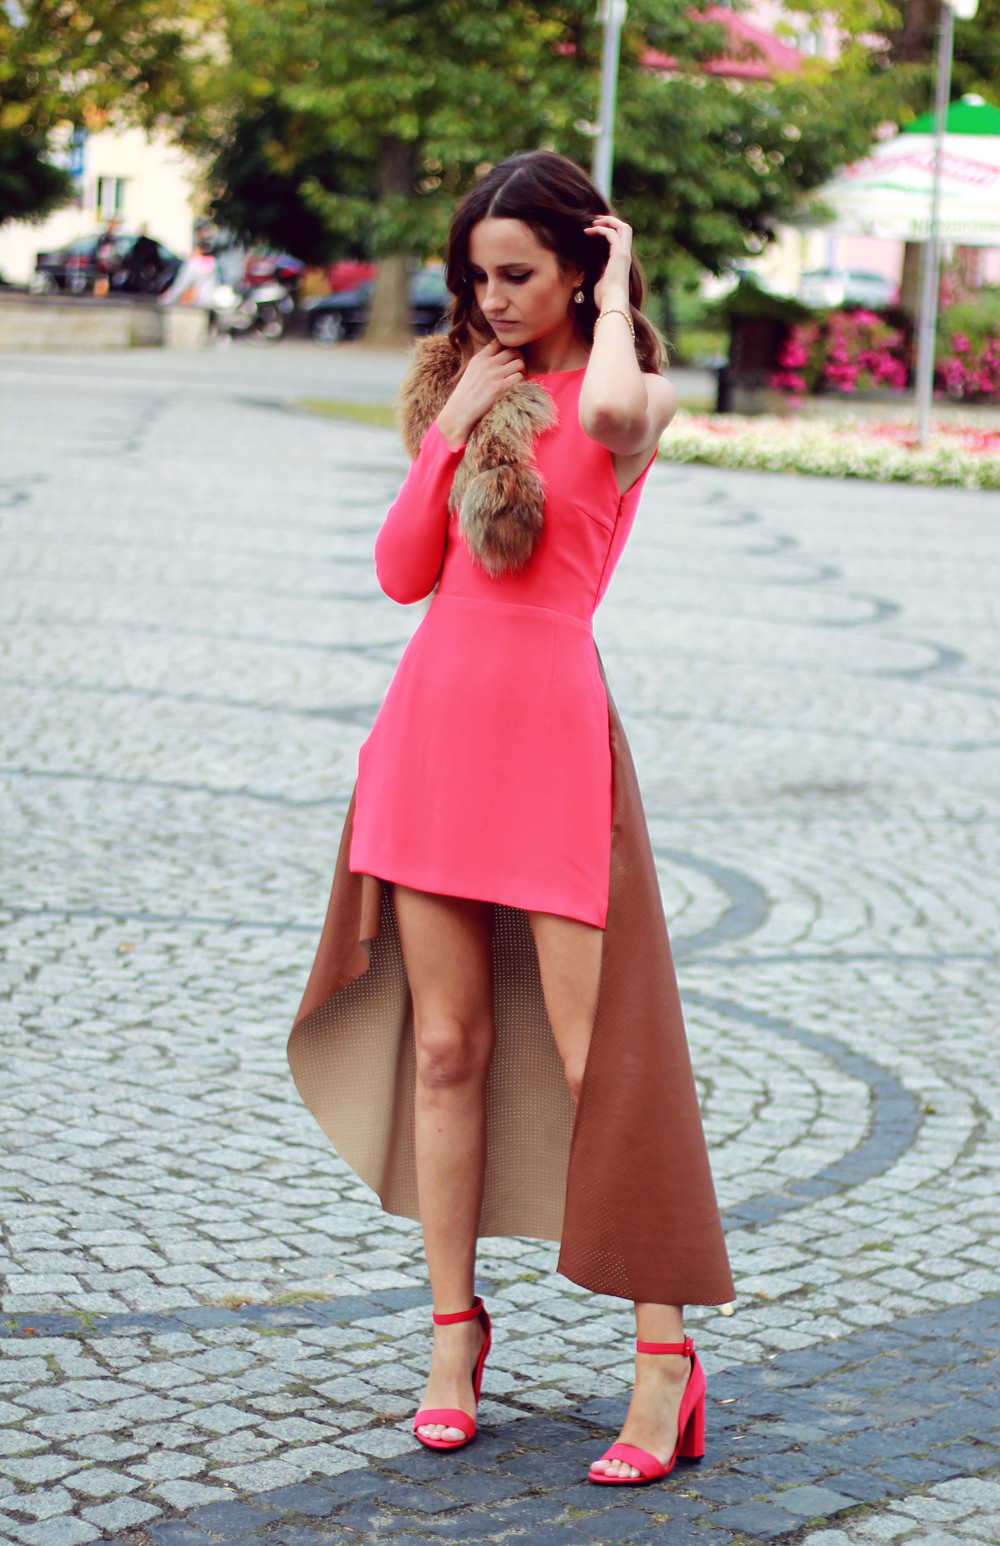 Red dress original chic outfit clothes tumblr style girl